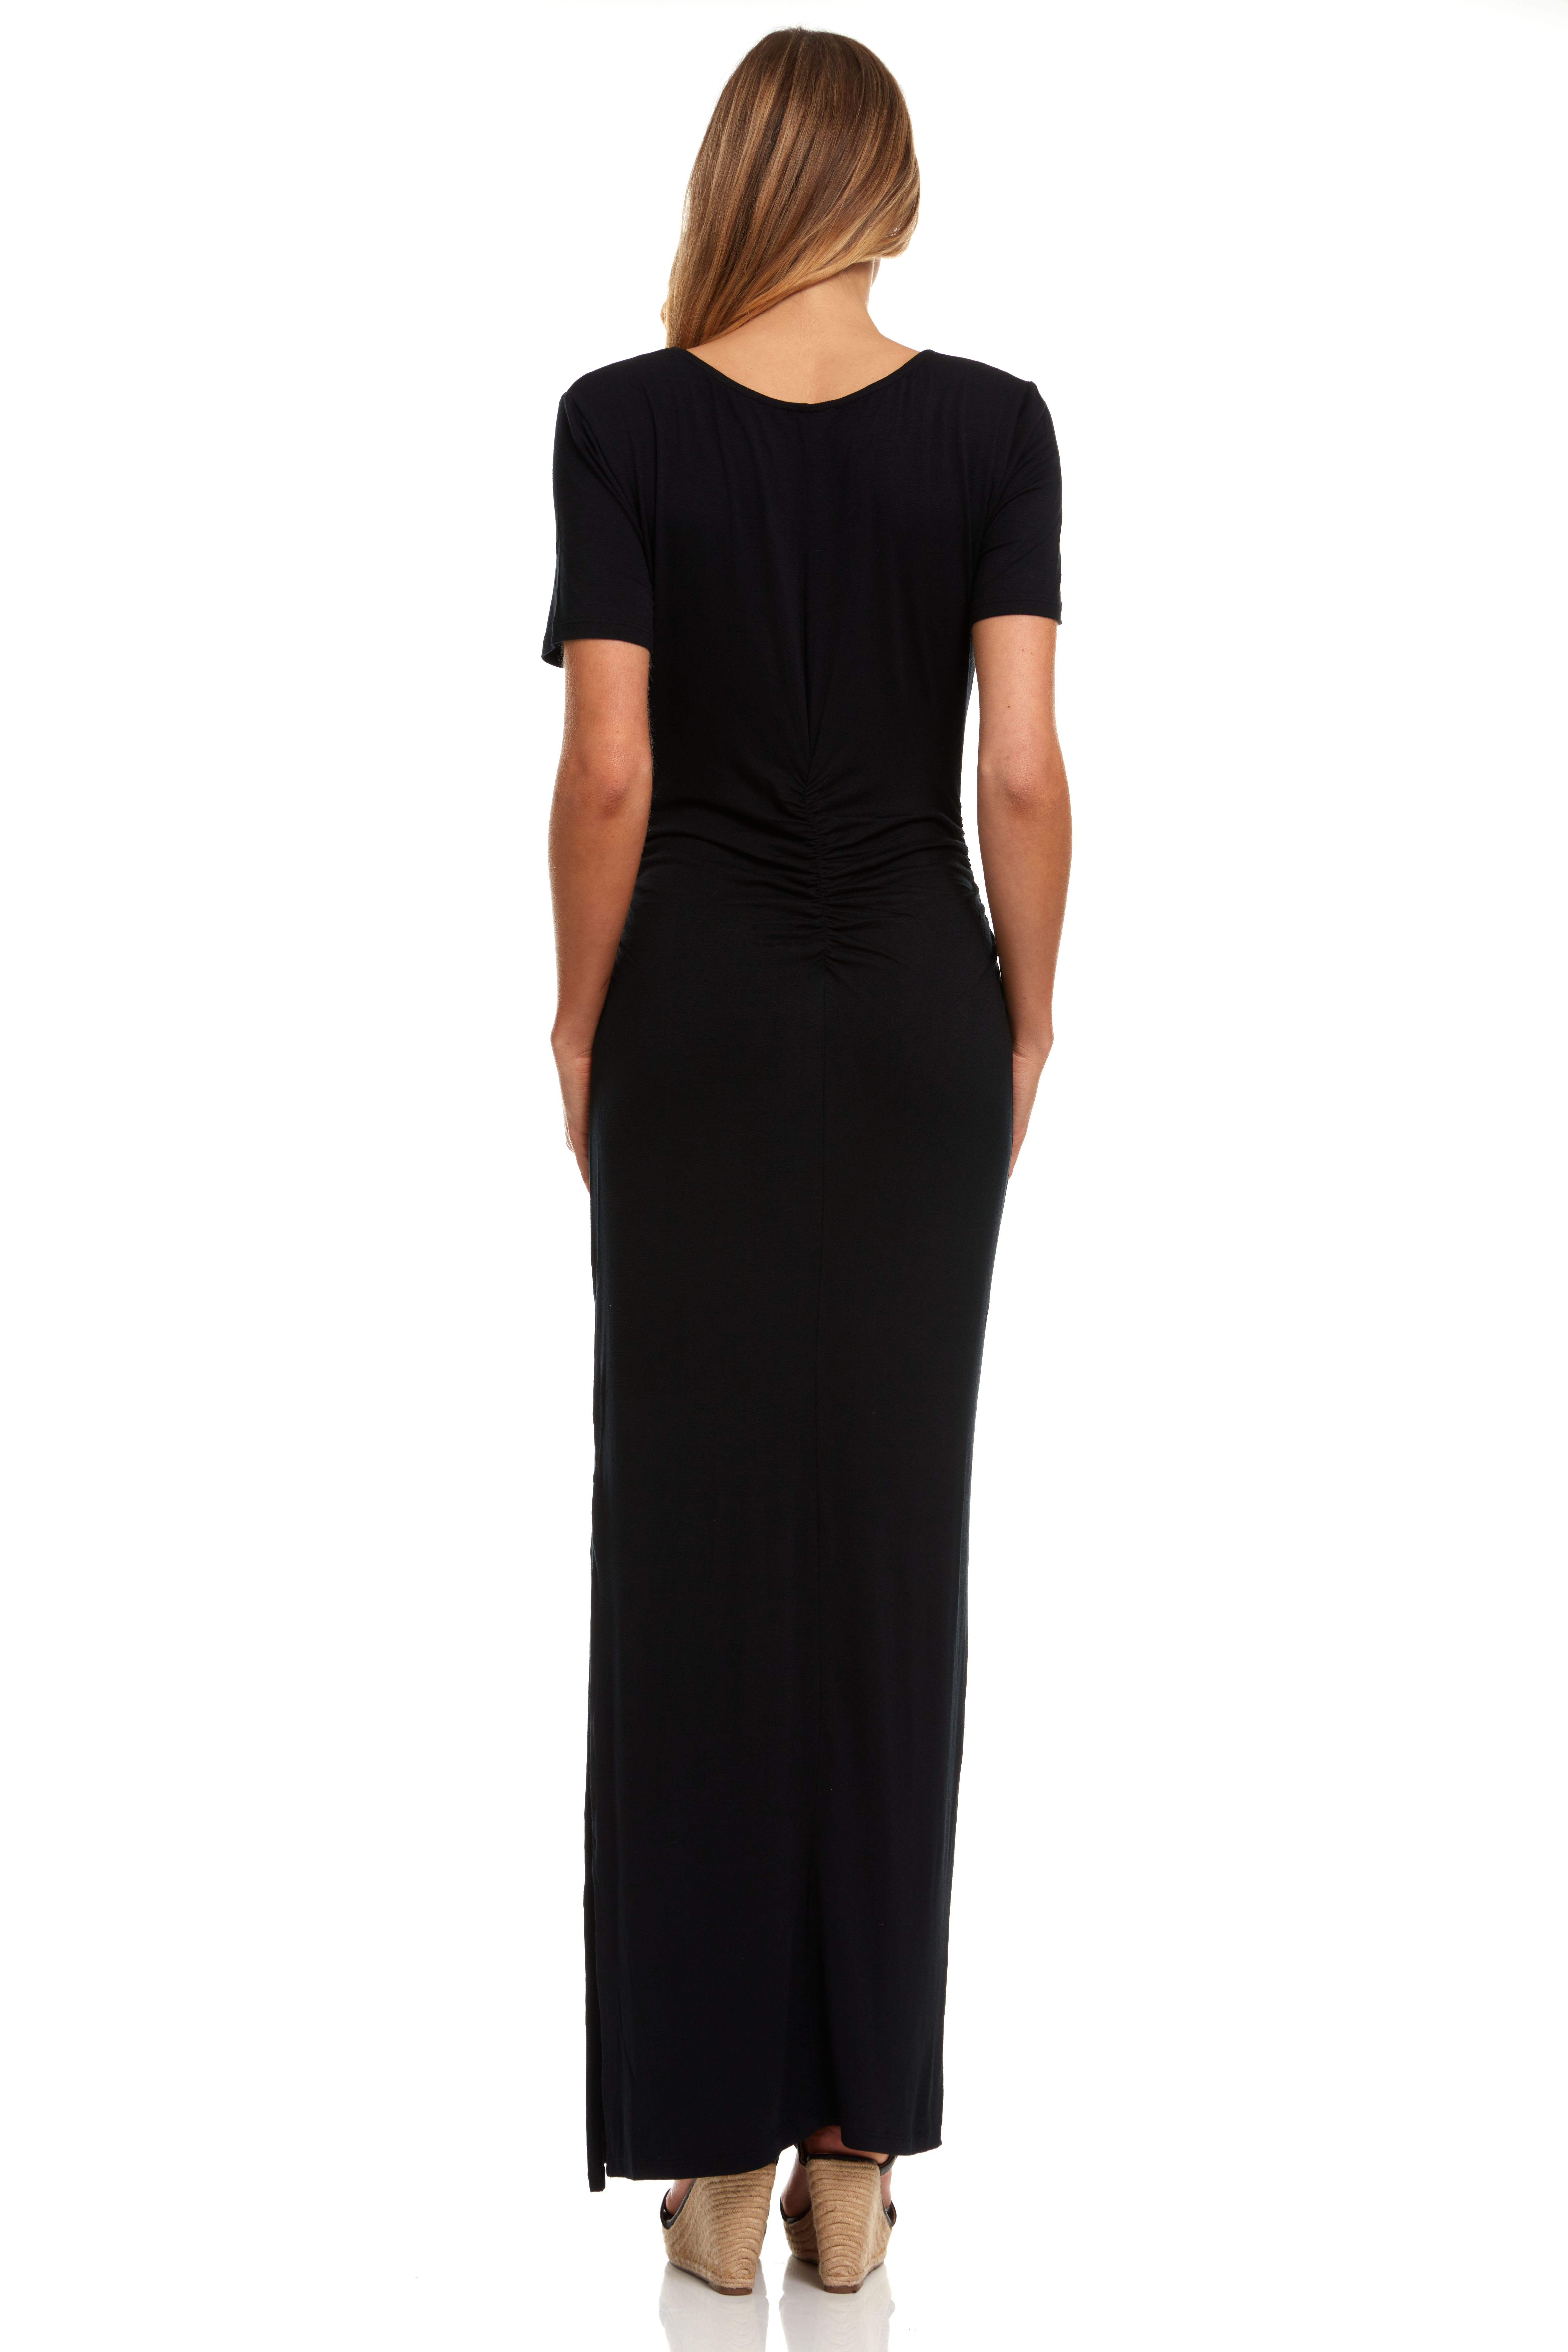 Rouched Side Maxi Dress with Criss-Cross Detail - Black - Back